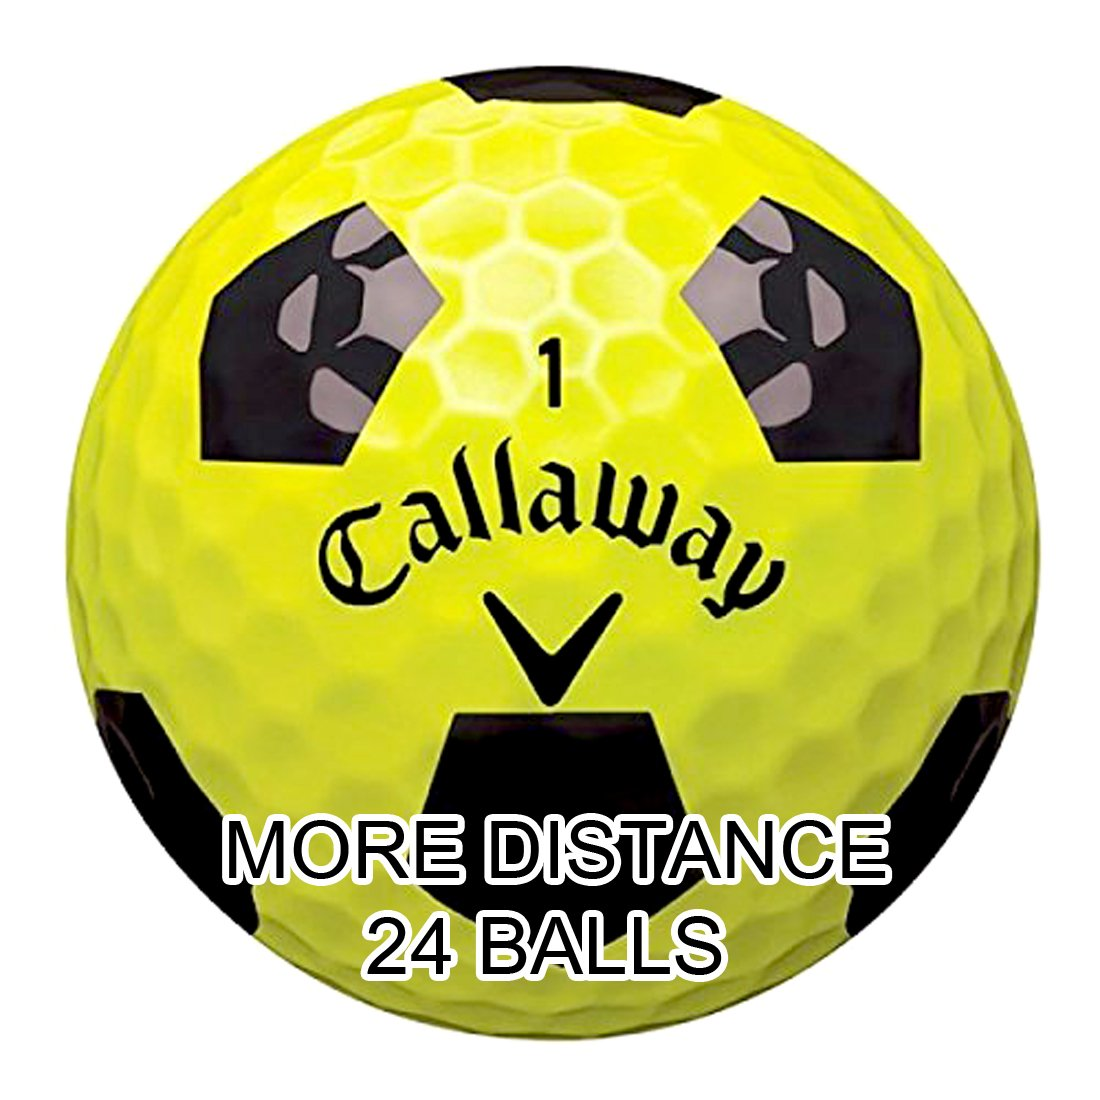 New 2017 Callaway Chrome Soft Golf Balls - Made in the USA ( 12 Pack) Choose your Color (Truvis Black on Yellow (2 Dozens))